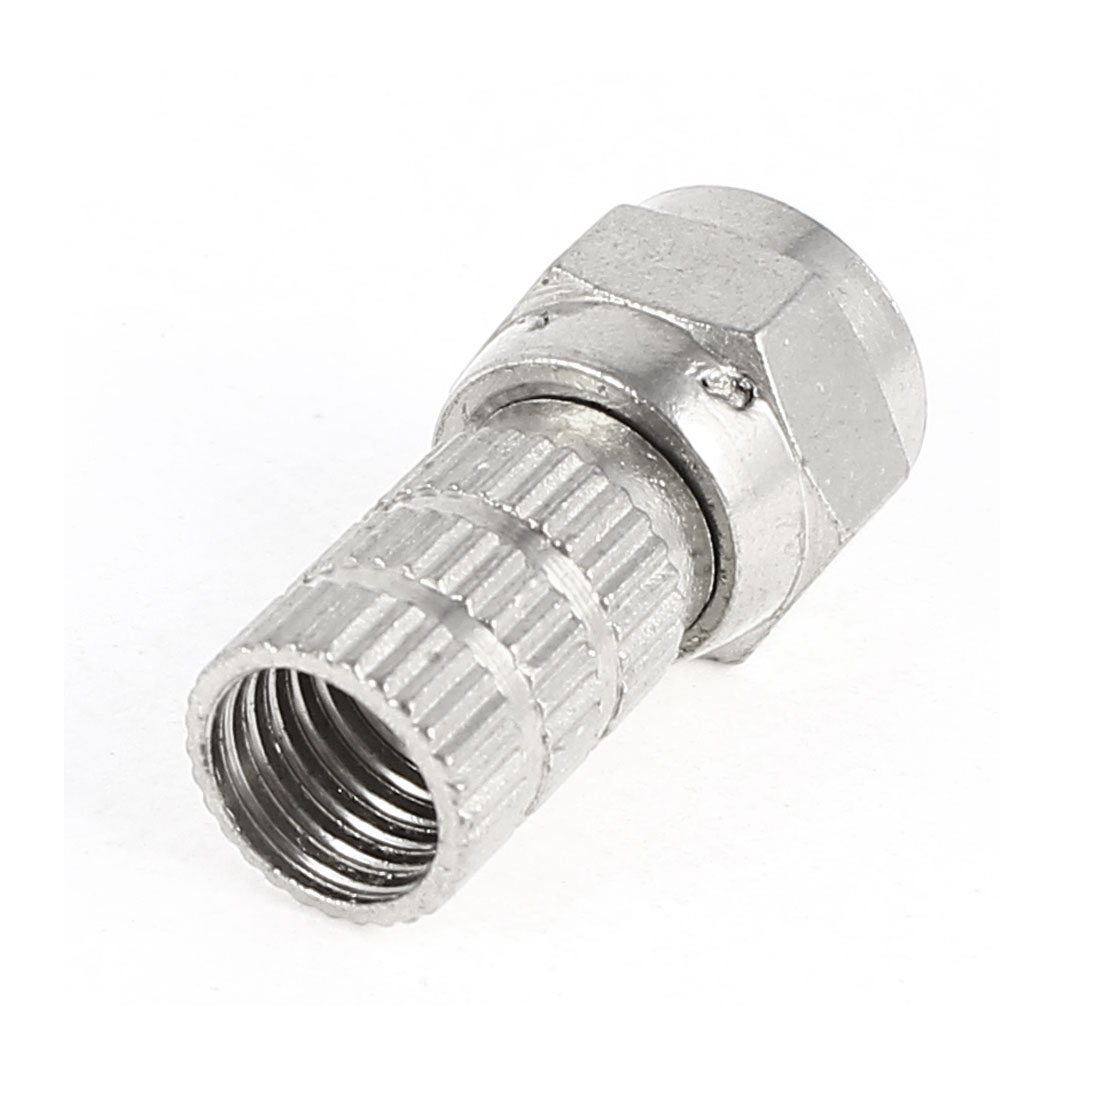 Silver Tone F-Type Crimp Connector for Quad Shield RG6 Cable